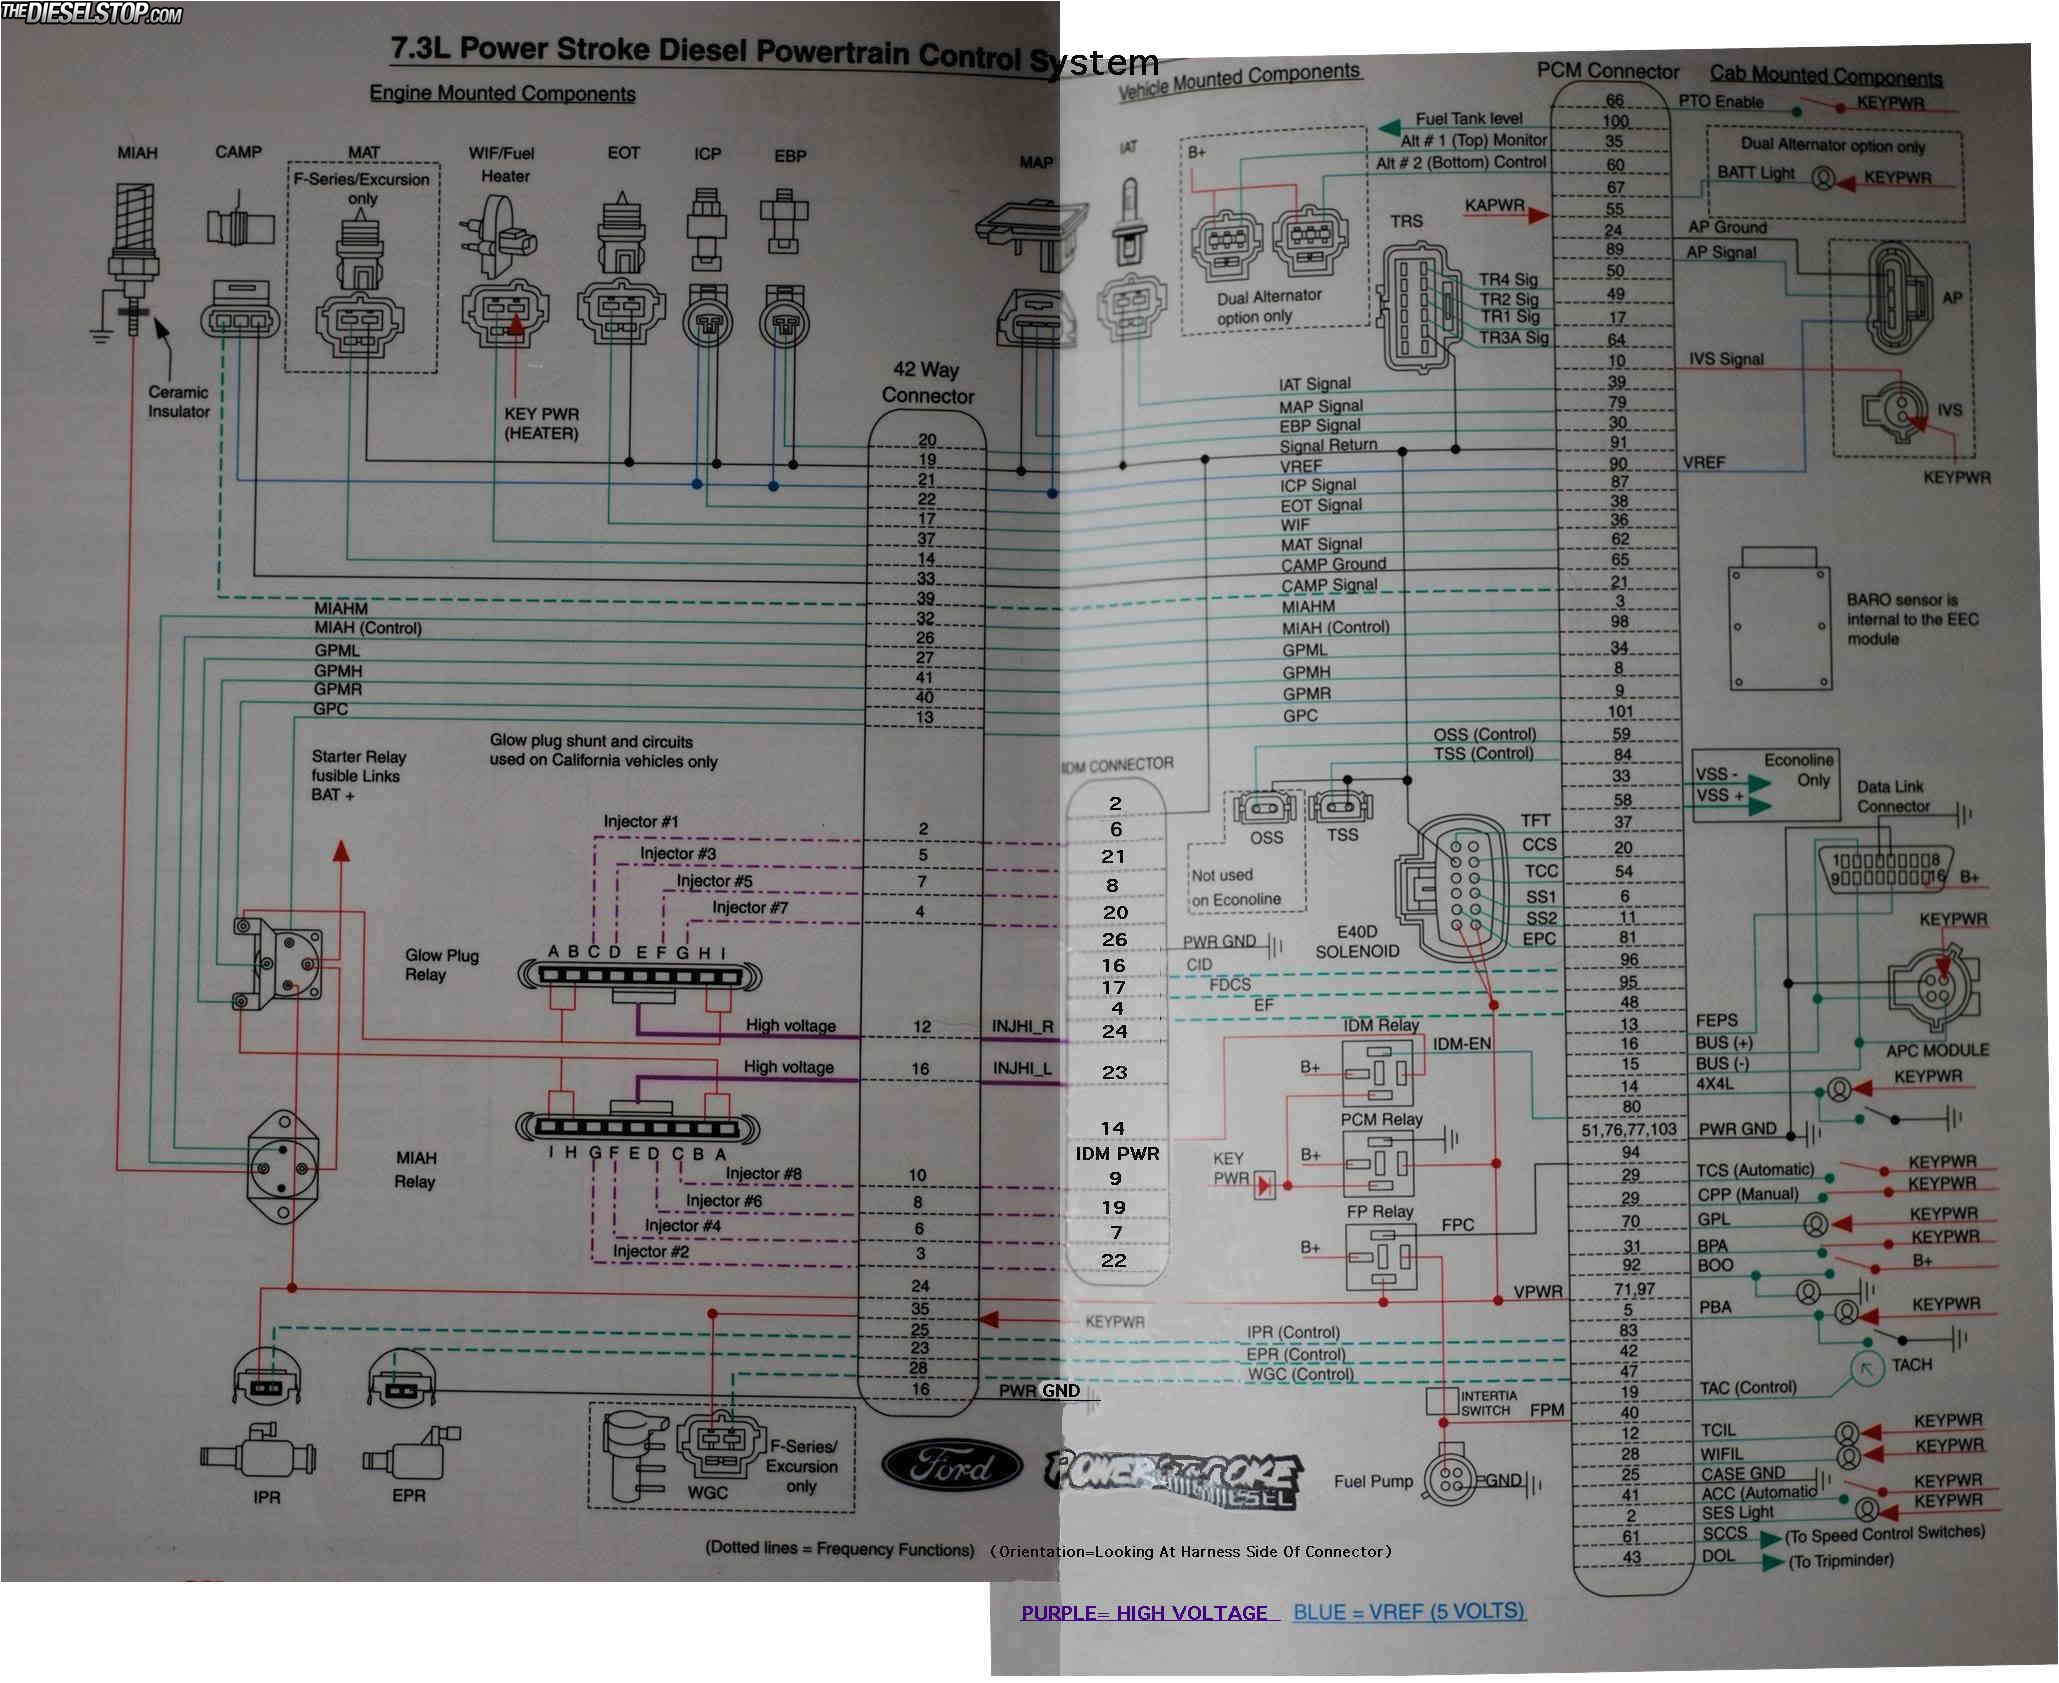 it s very detailed and shows how every wire for each component routes to the pcm